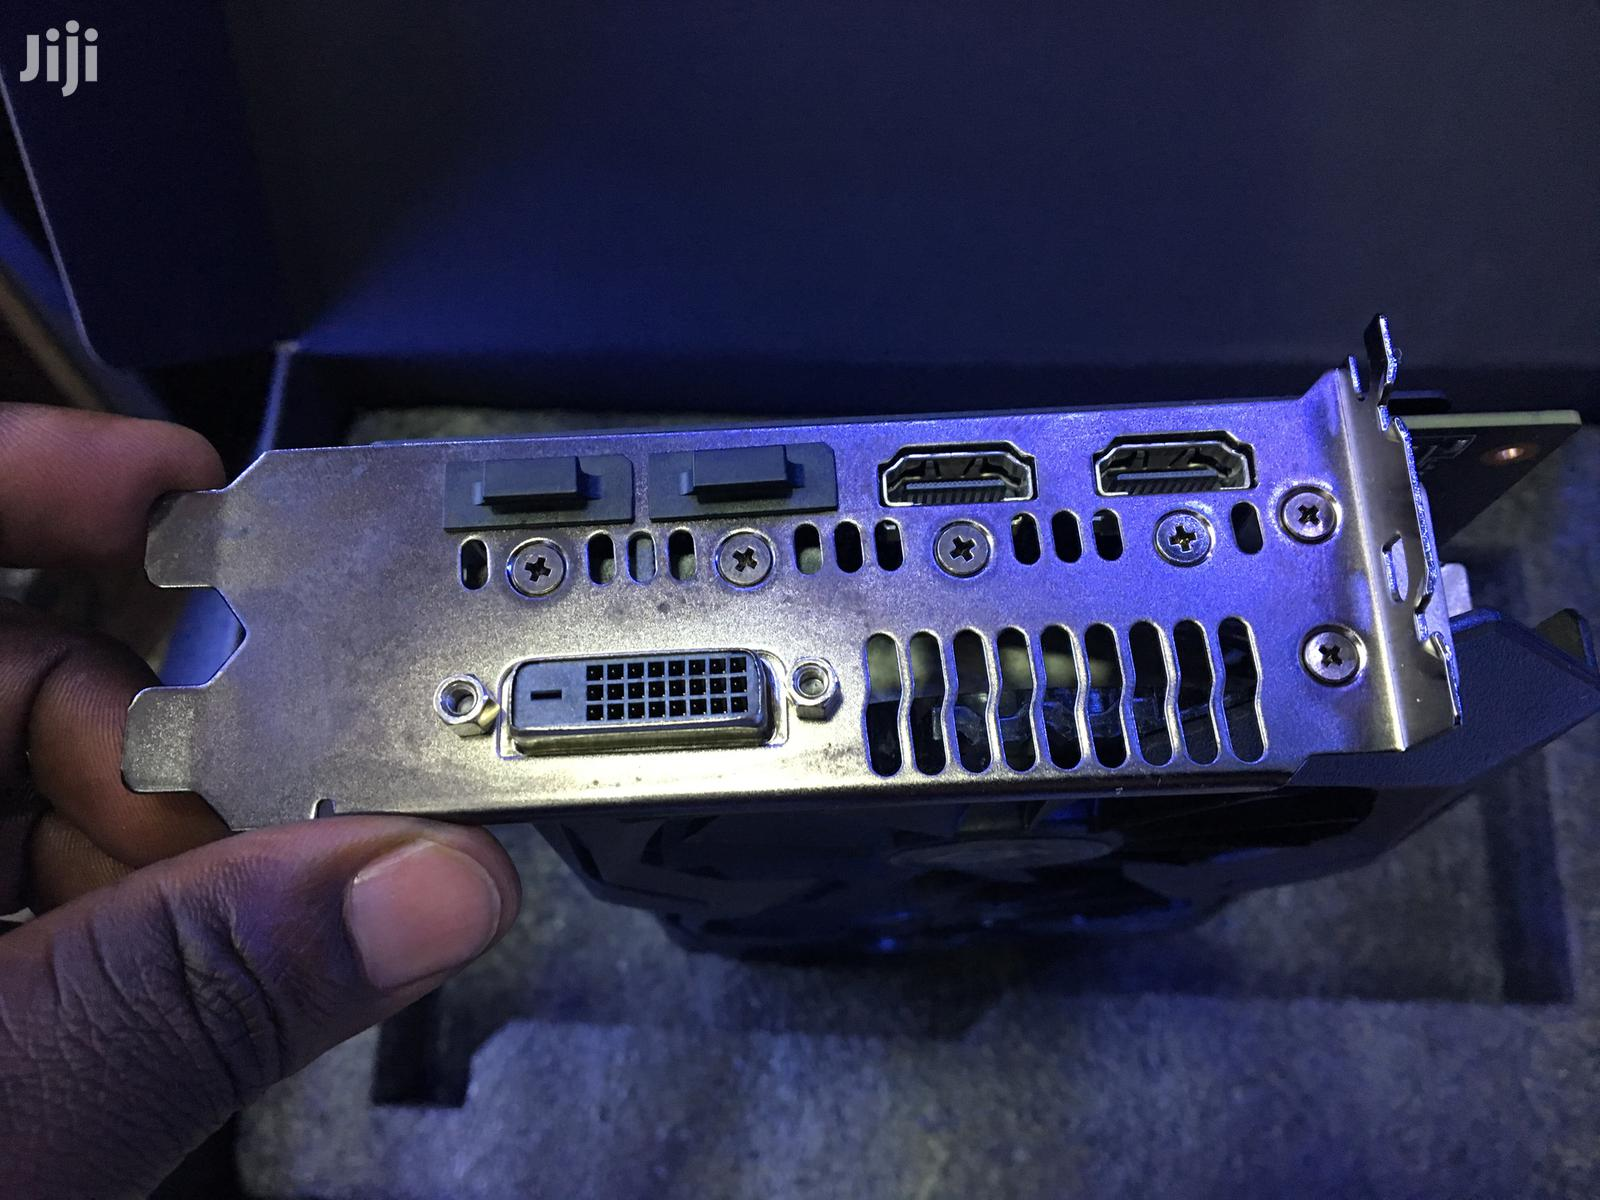 New Cheap Nvidia Gtx 1060 Graphics Card 6GB Ddr5 | Computer Hardware for sale in Kampala, Central Region, Uganda